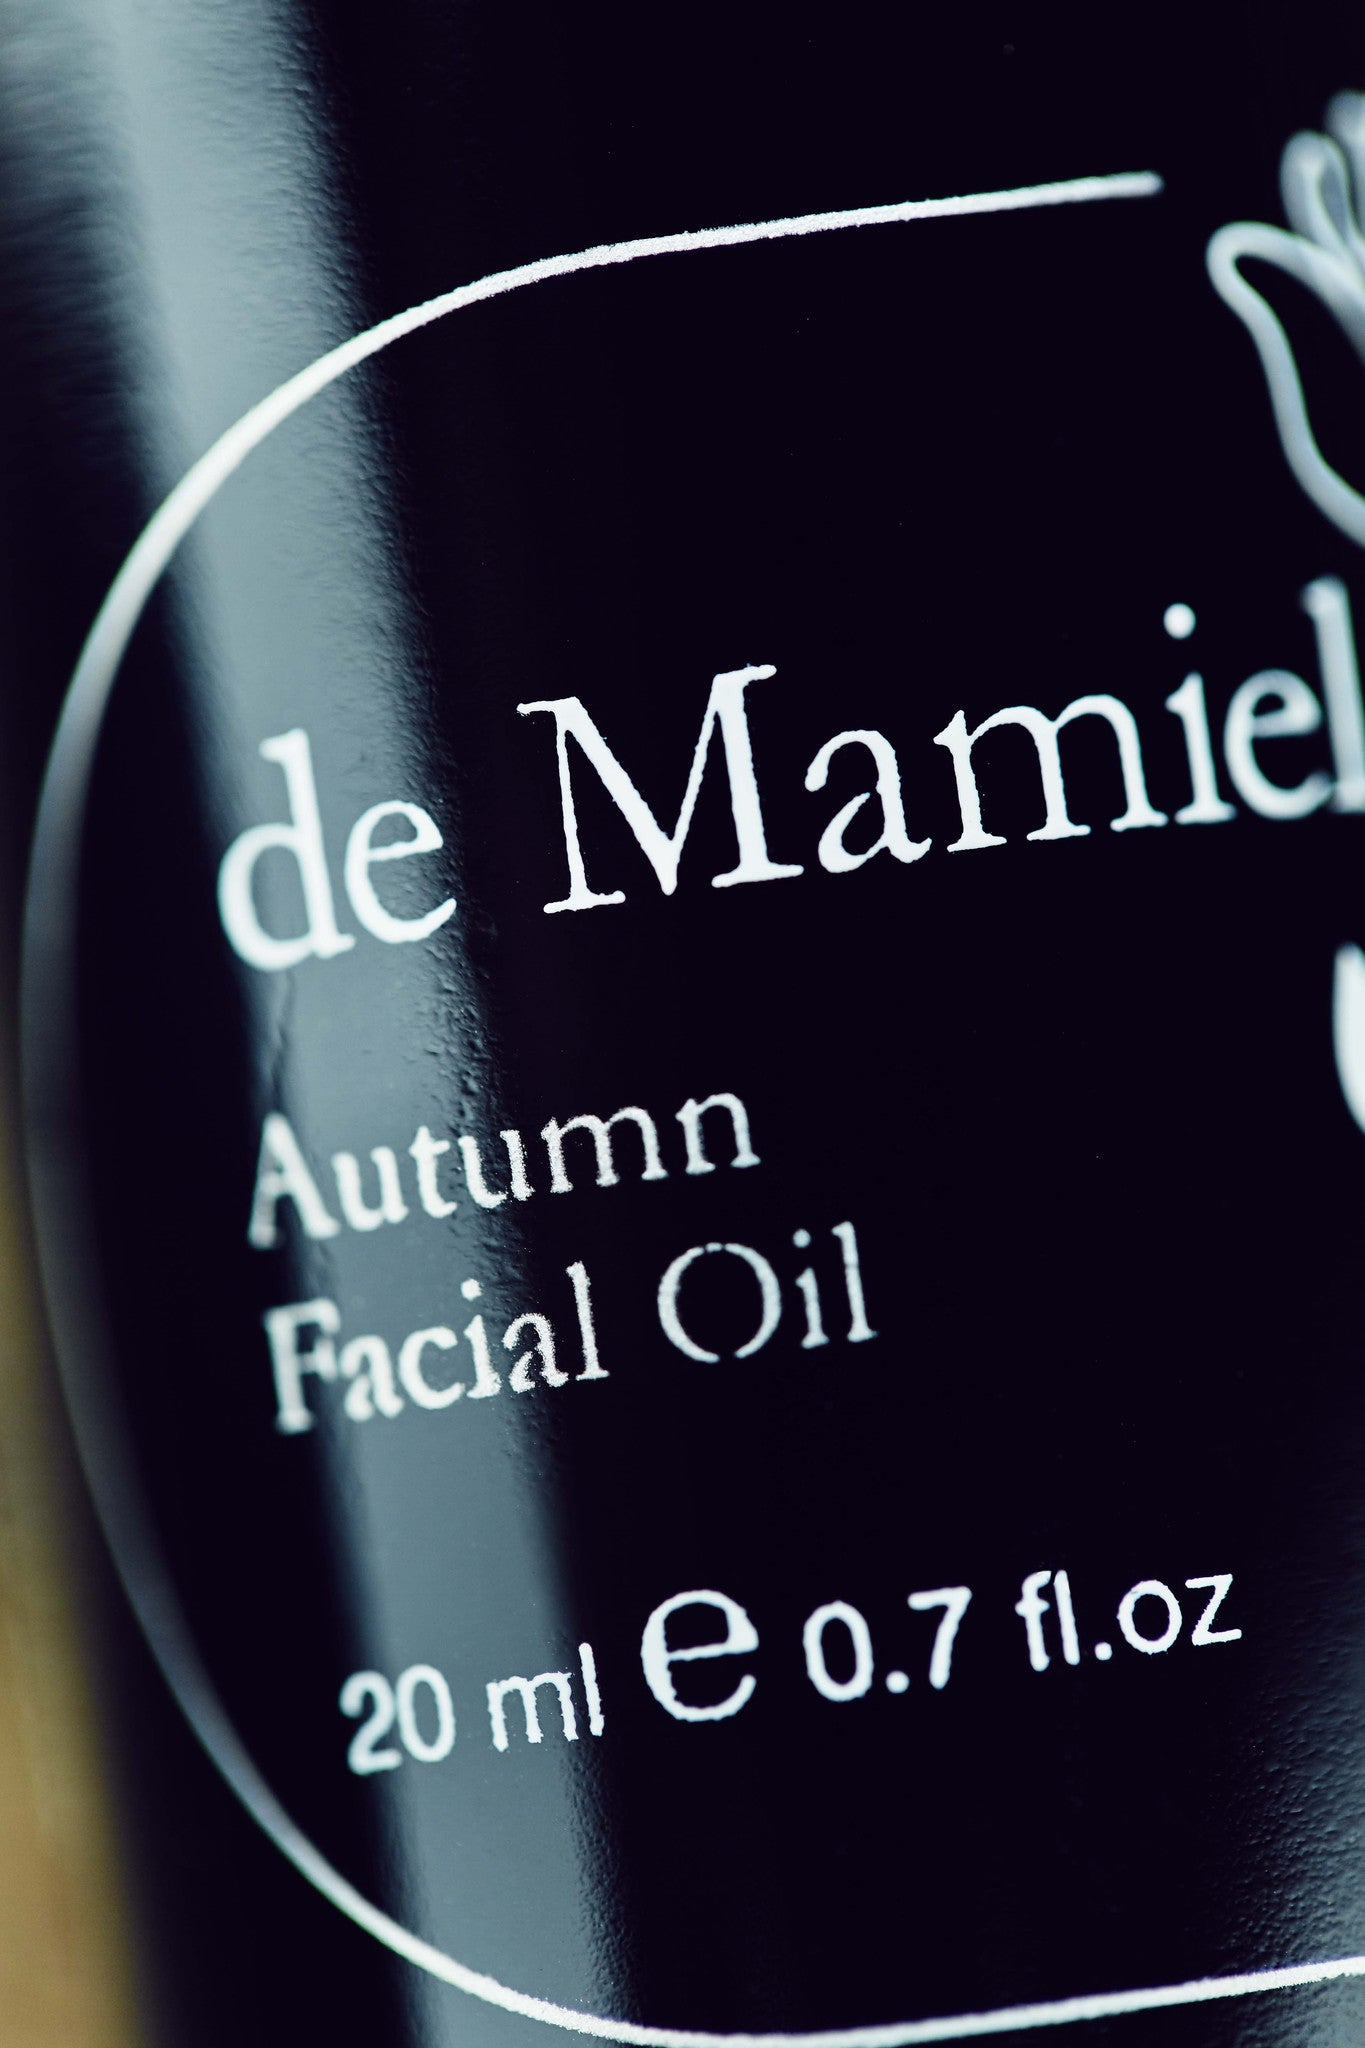 Autumn Facial Oil